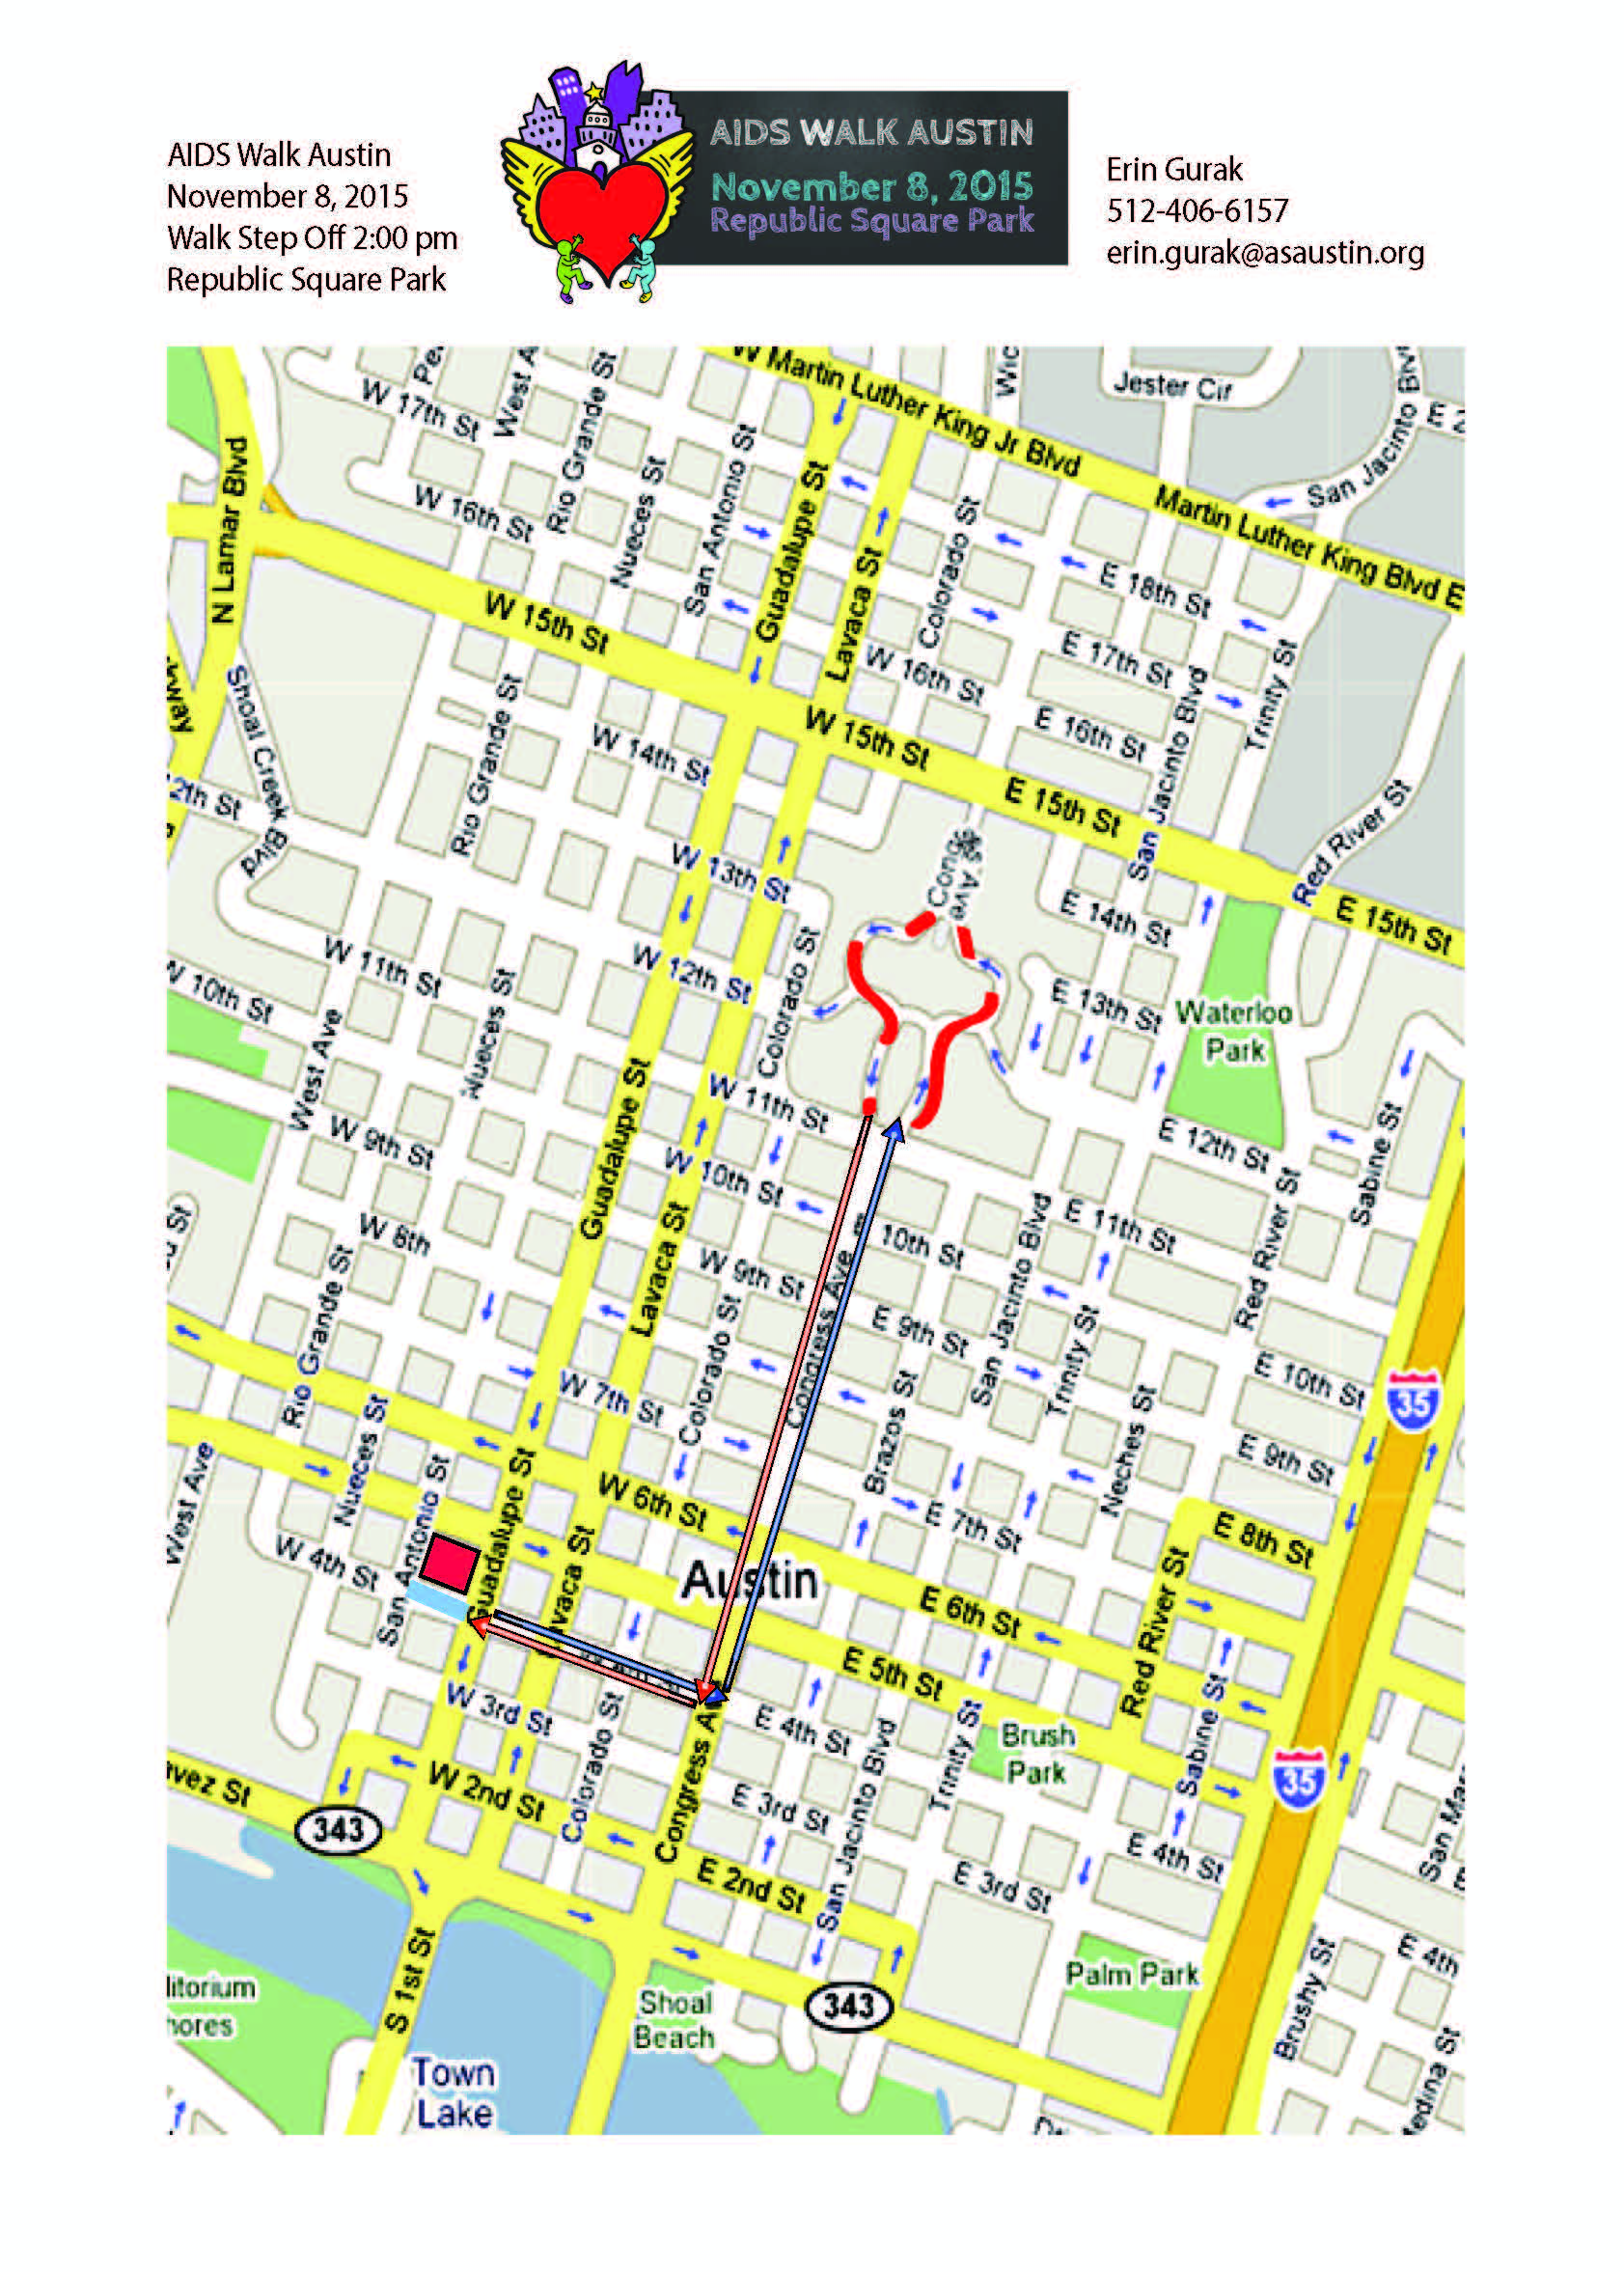 AIDS Walk 2015 Route